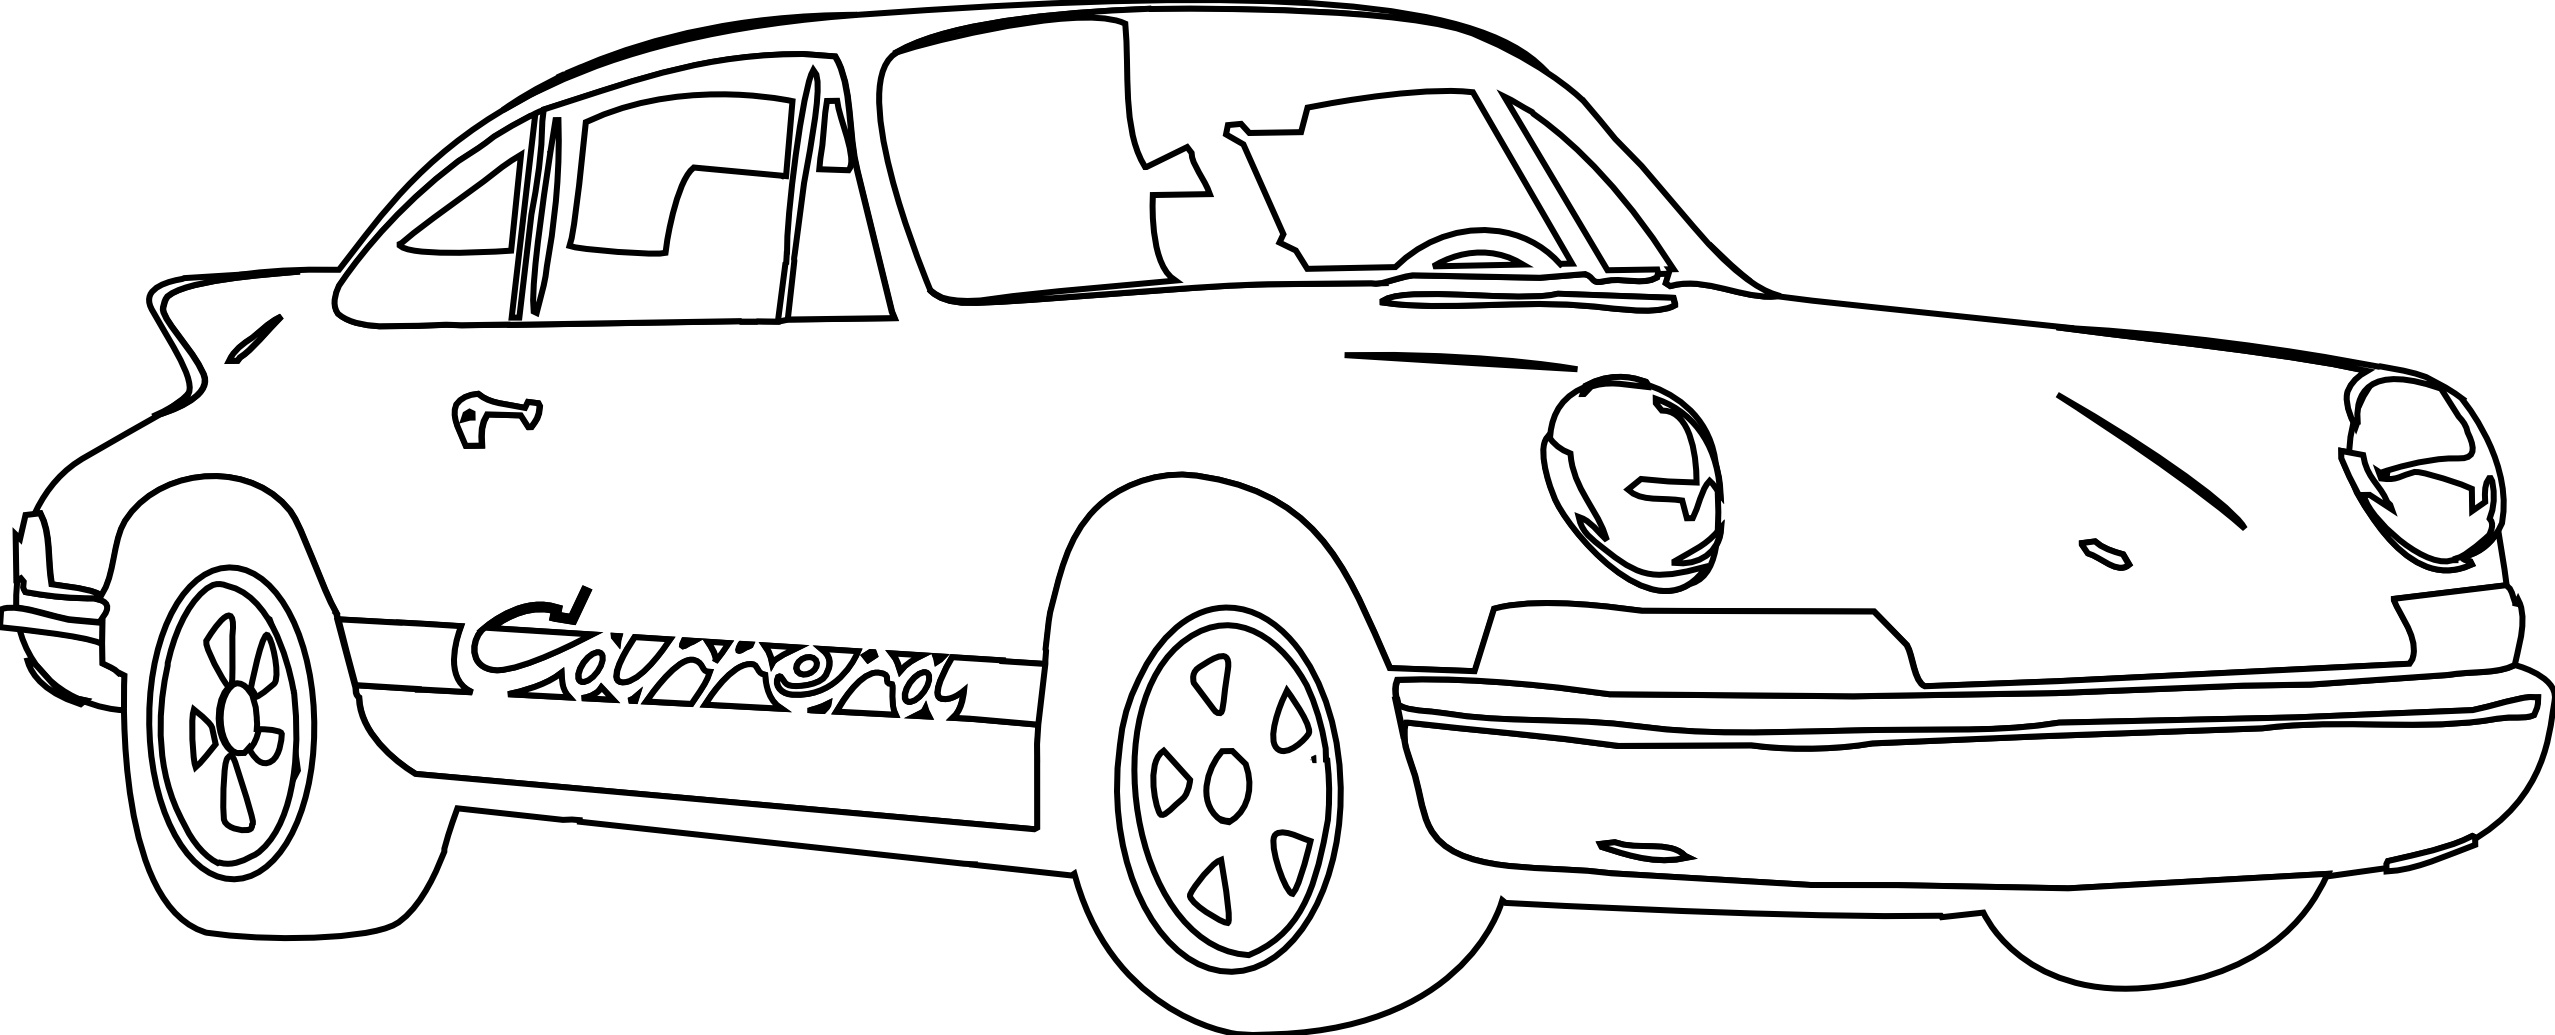 Porsche vector drawing. Free cliparts download clip